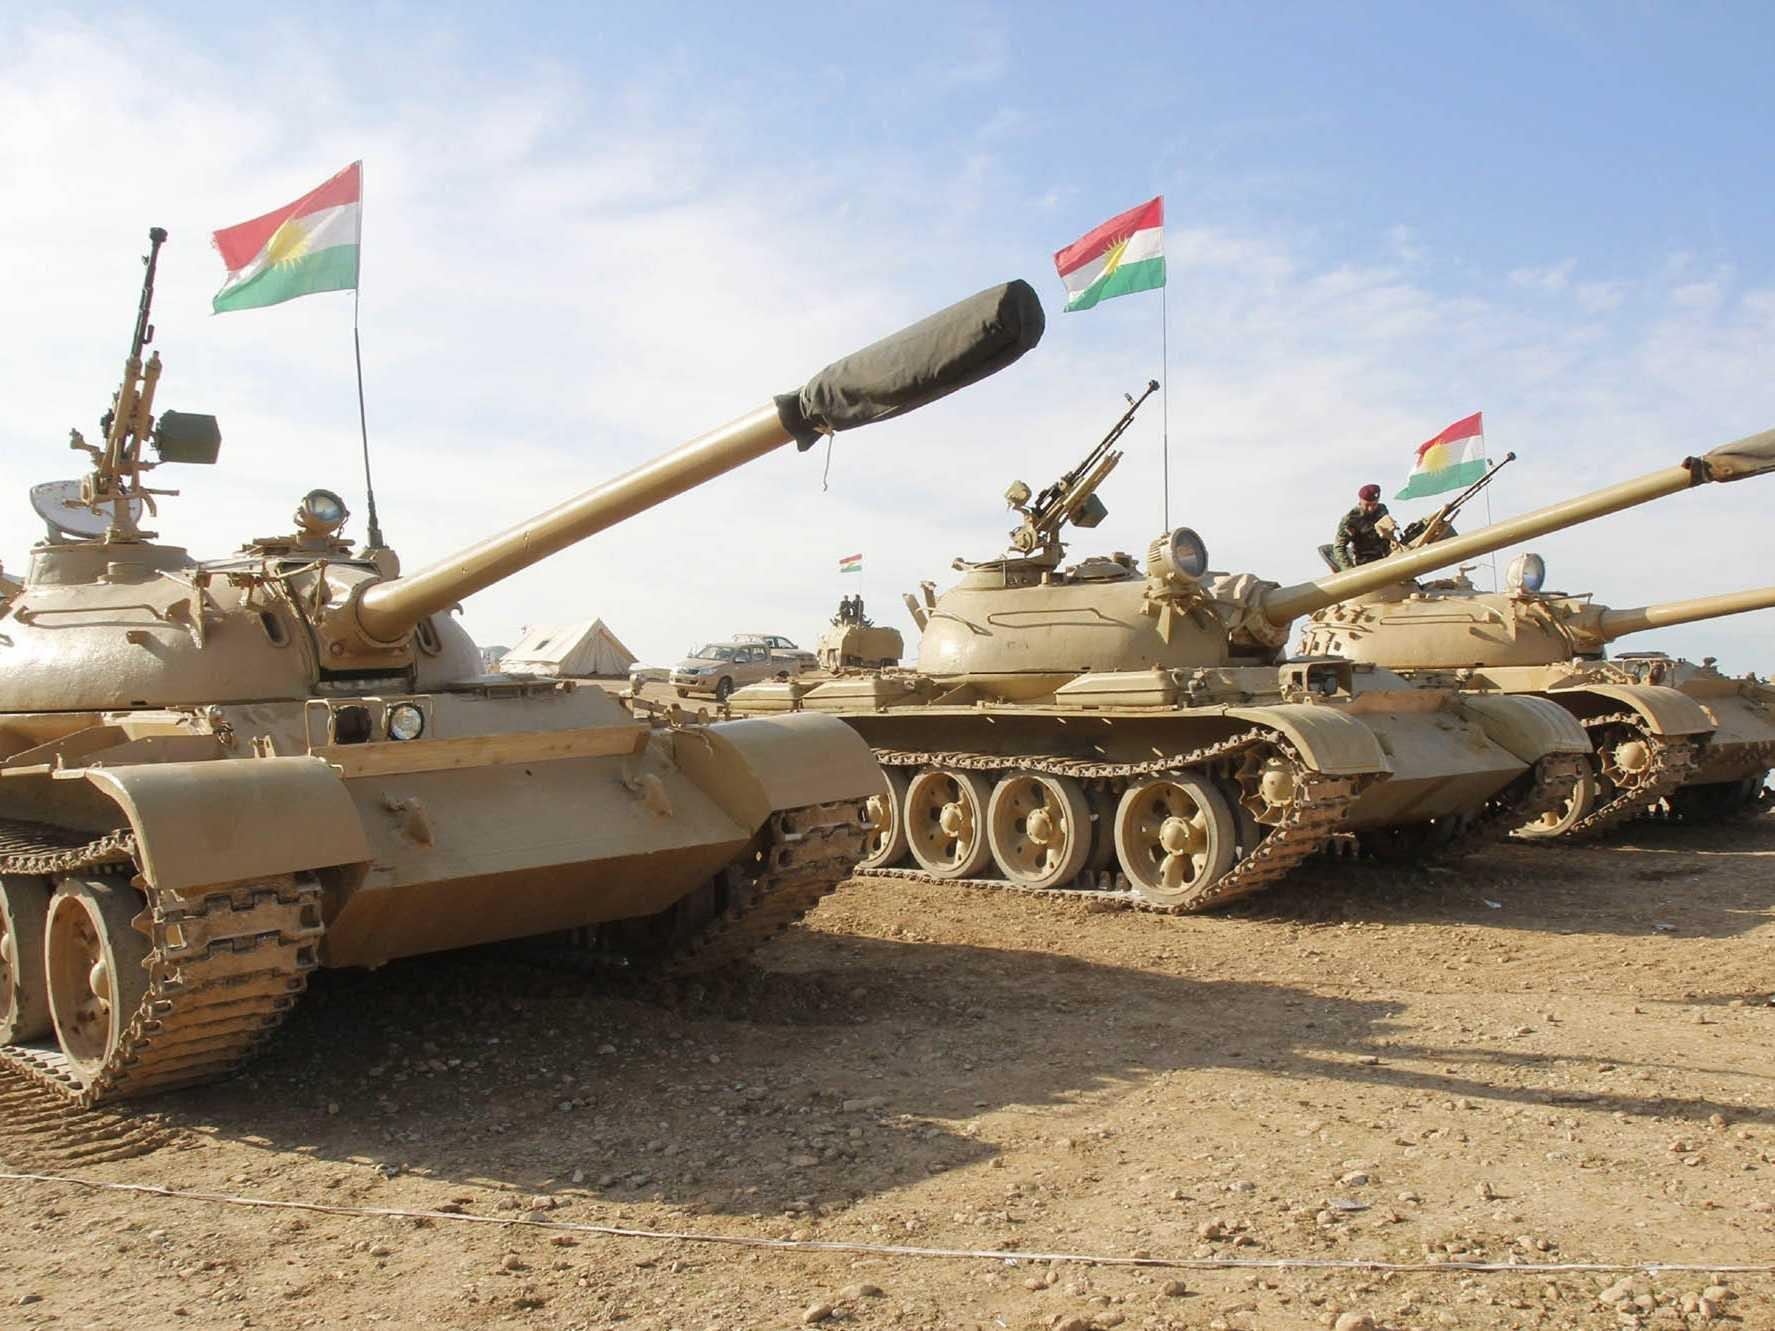 قوات البيشمركه الكرديه  As-the-kurds-mobilize-in-iraq-heres-a-look-at-what-they-have-in-their-arsenal